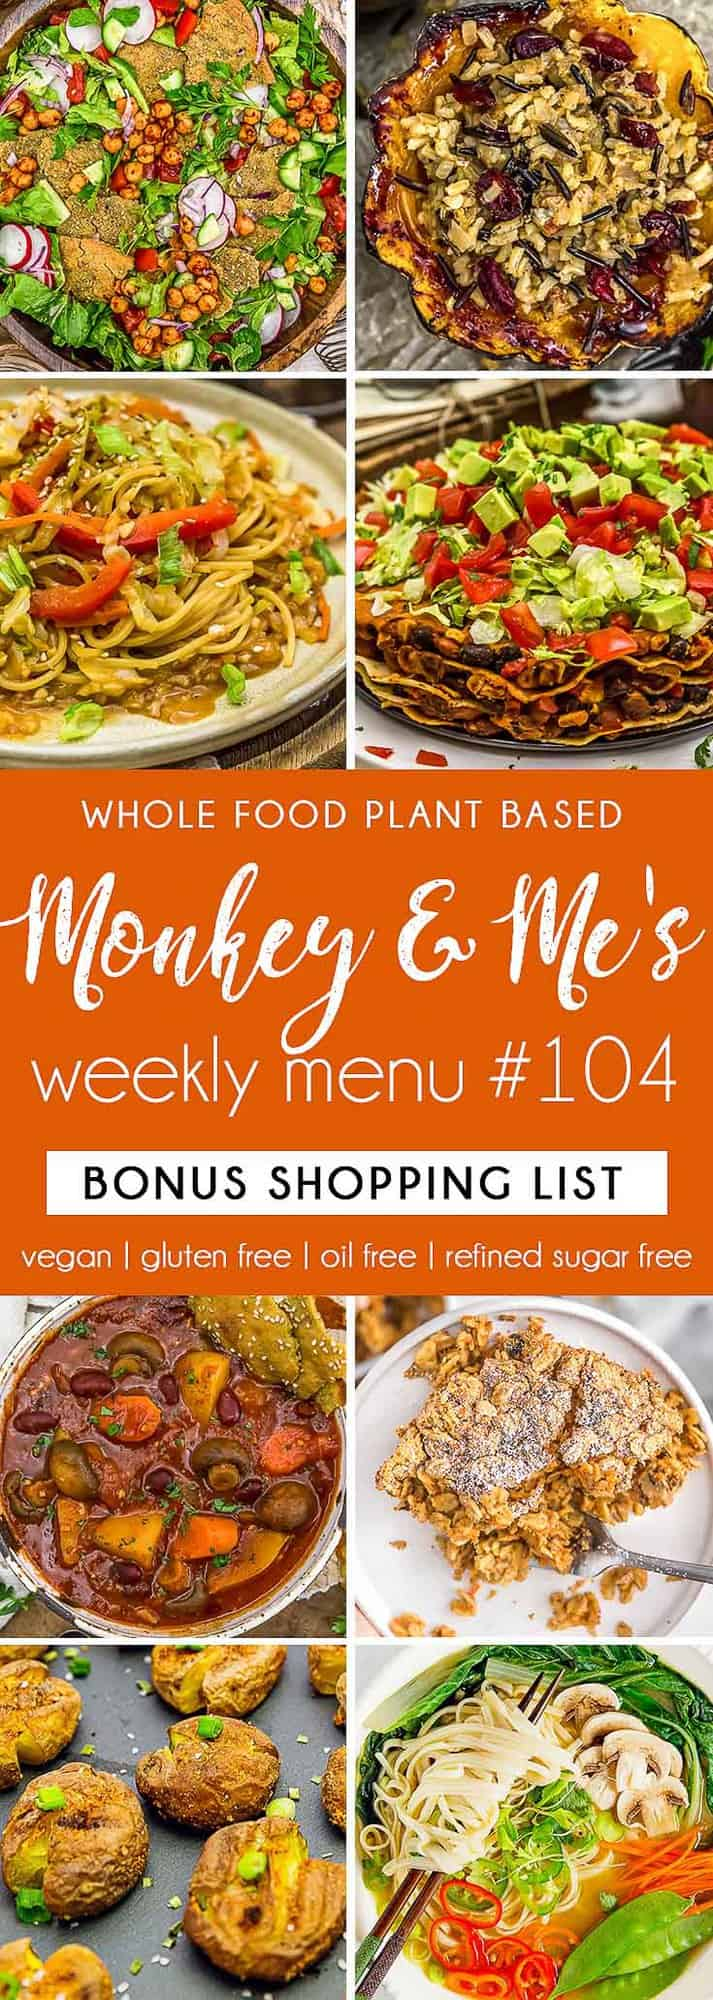 Monkey and Me's Menu 104 featuring 8 recipes